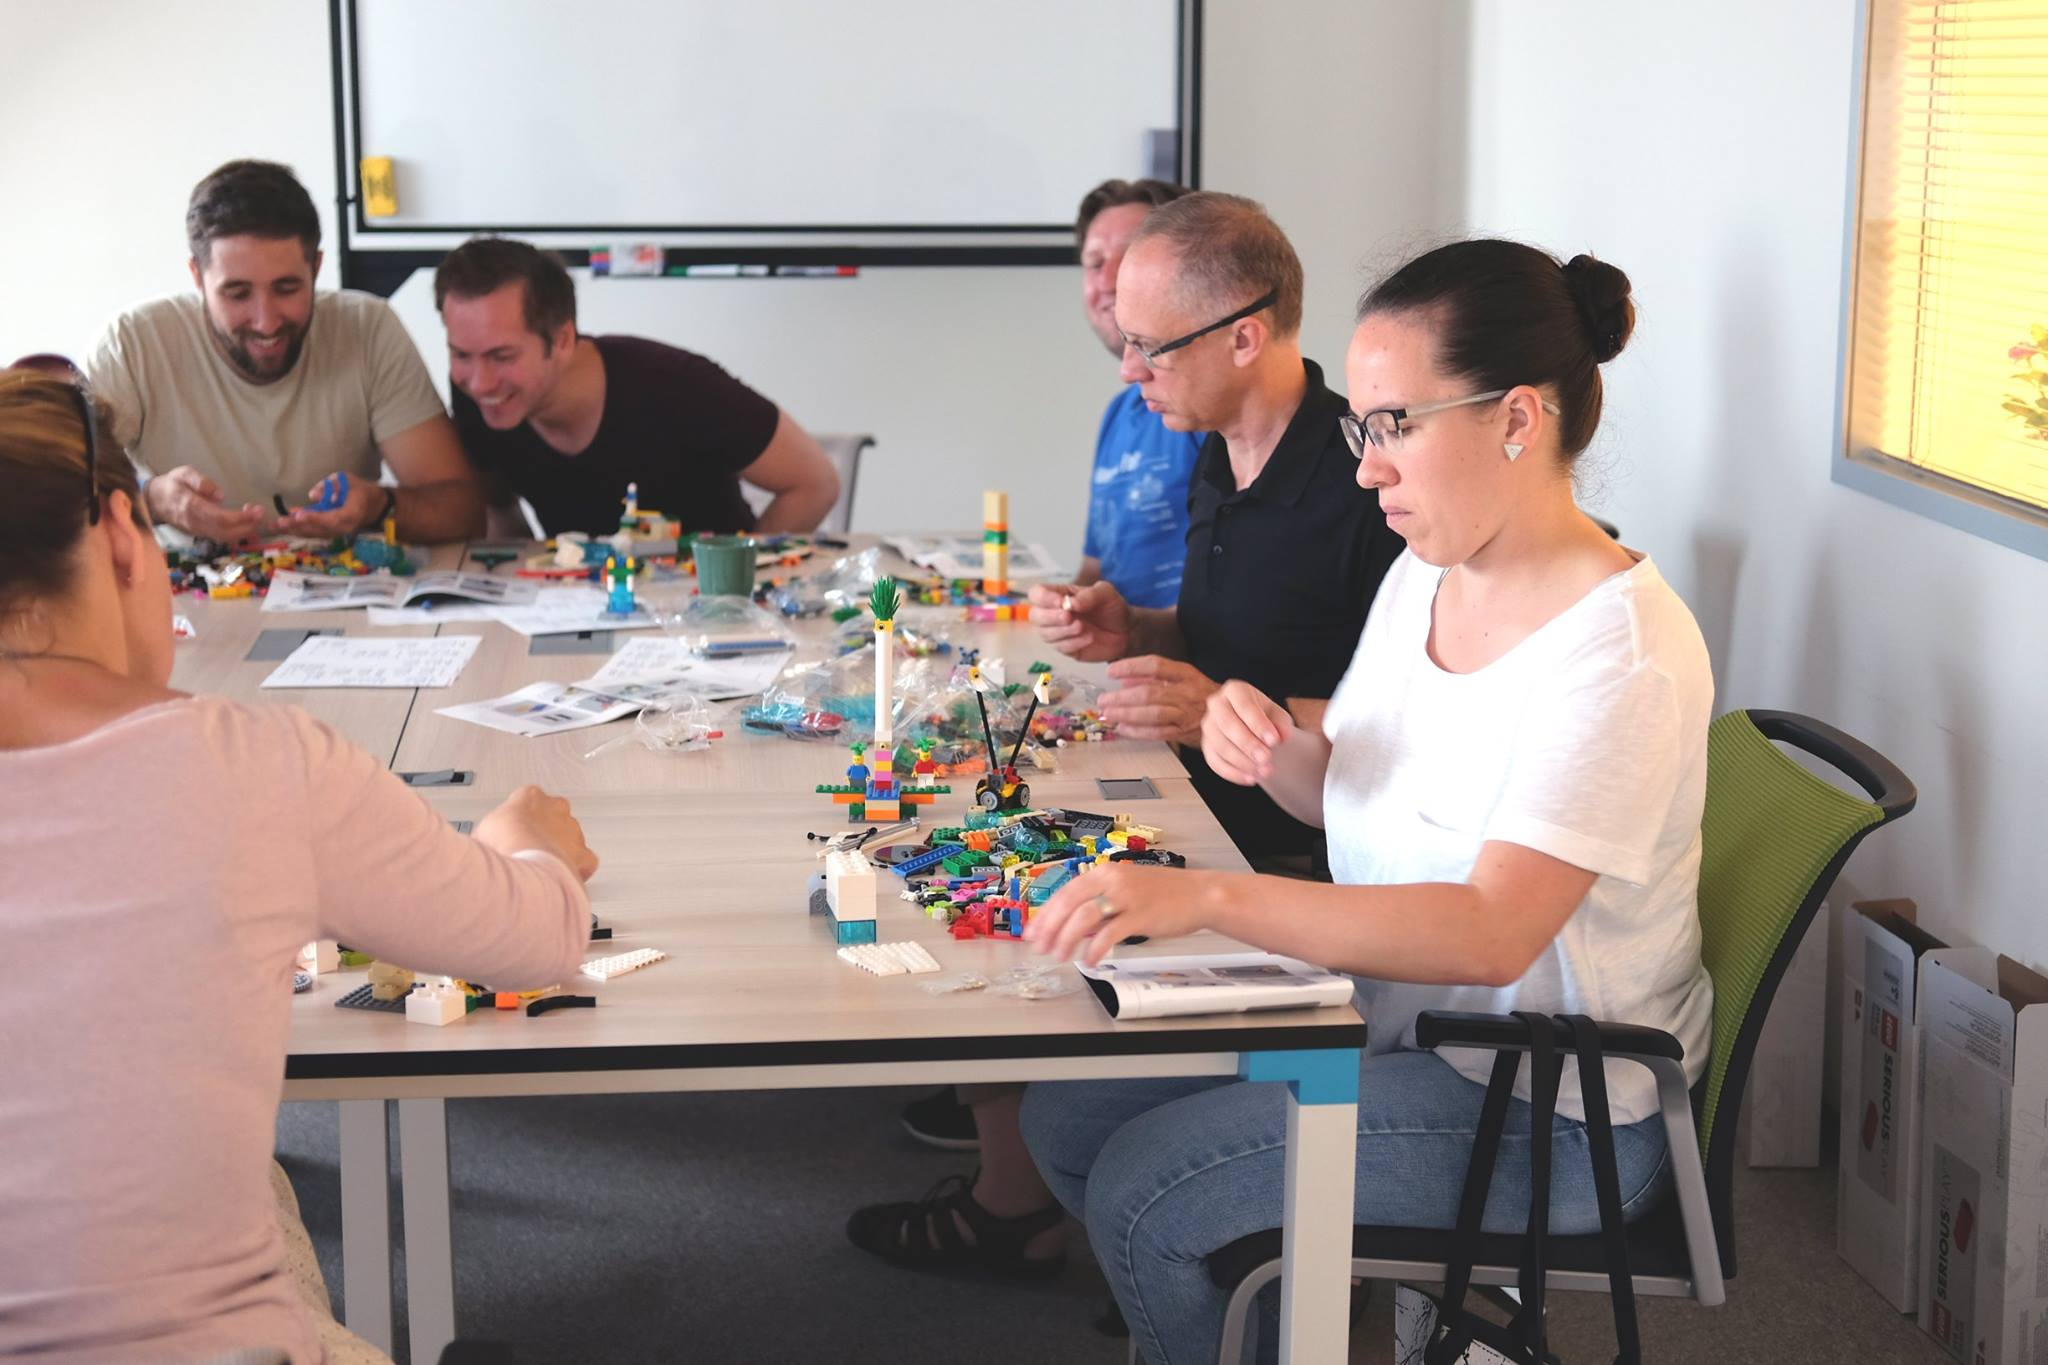 Lego serious play workshop at Ergománia